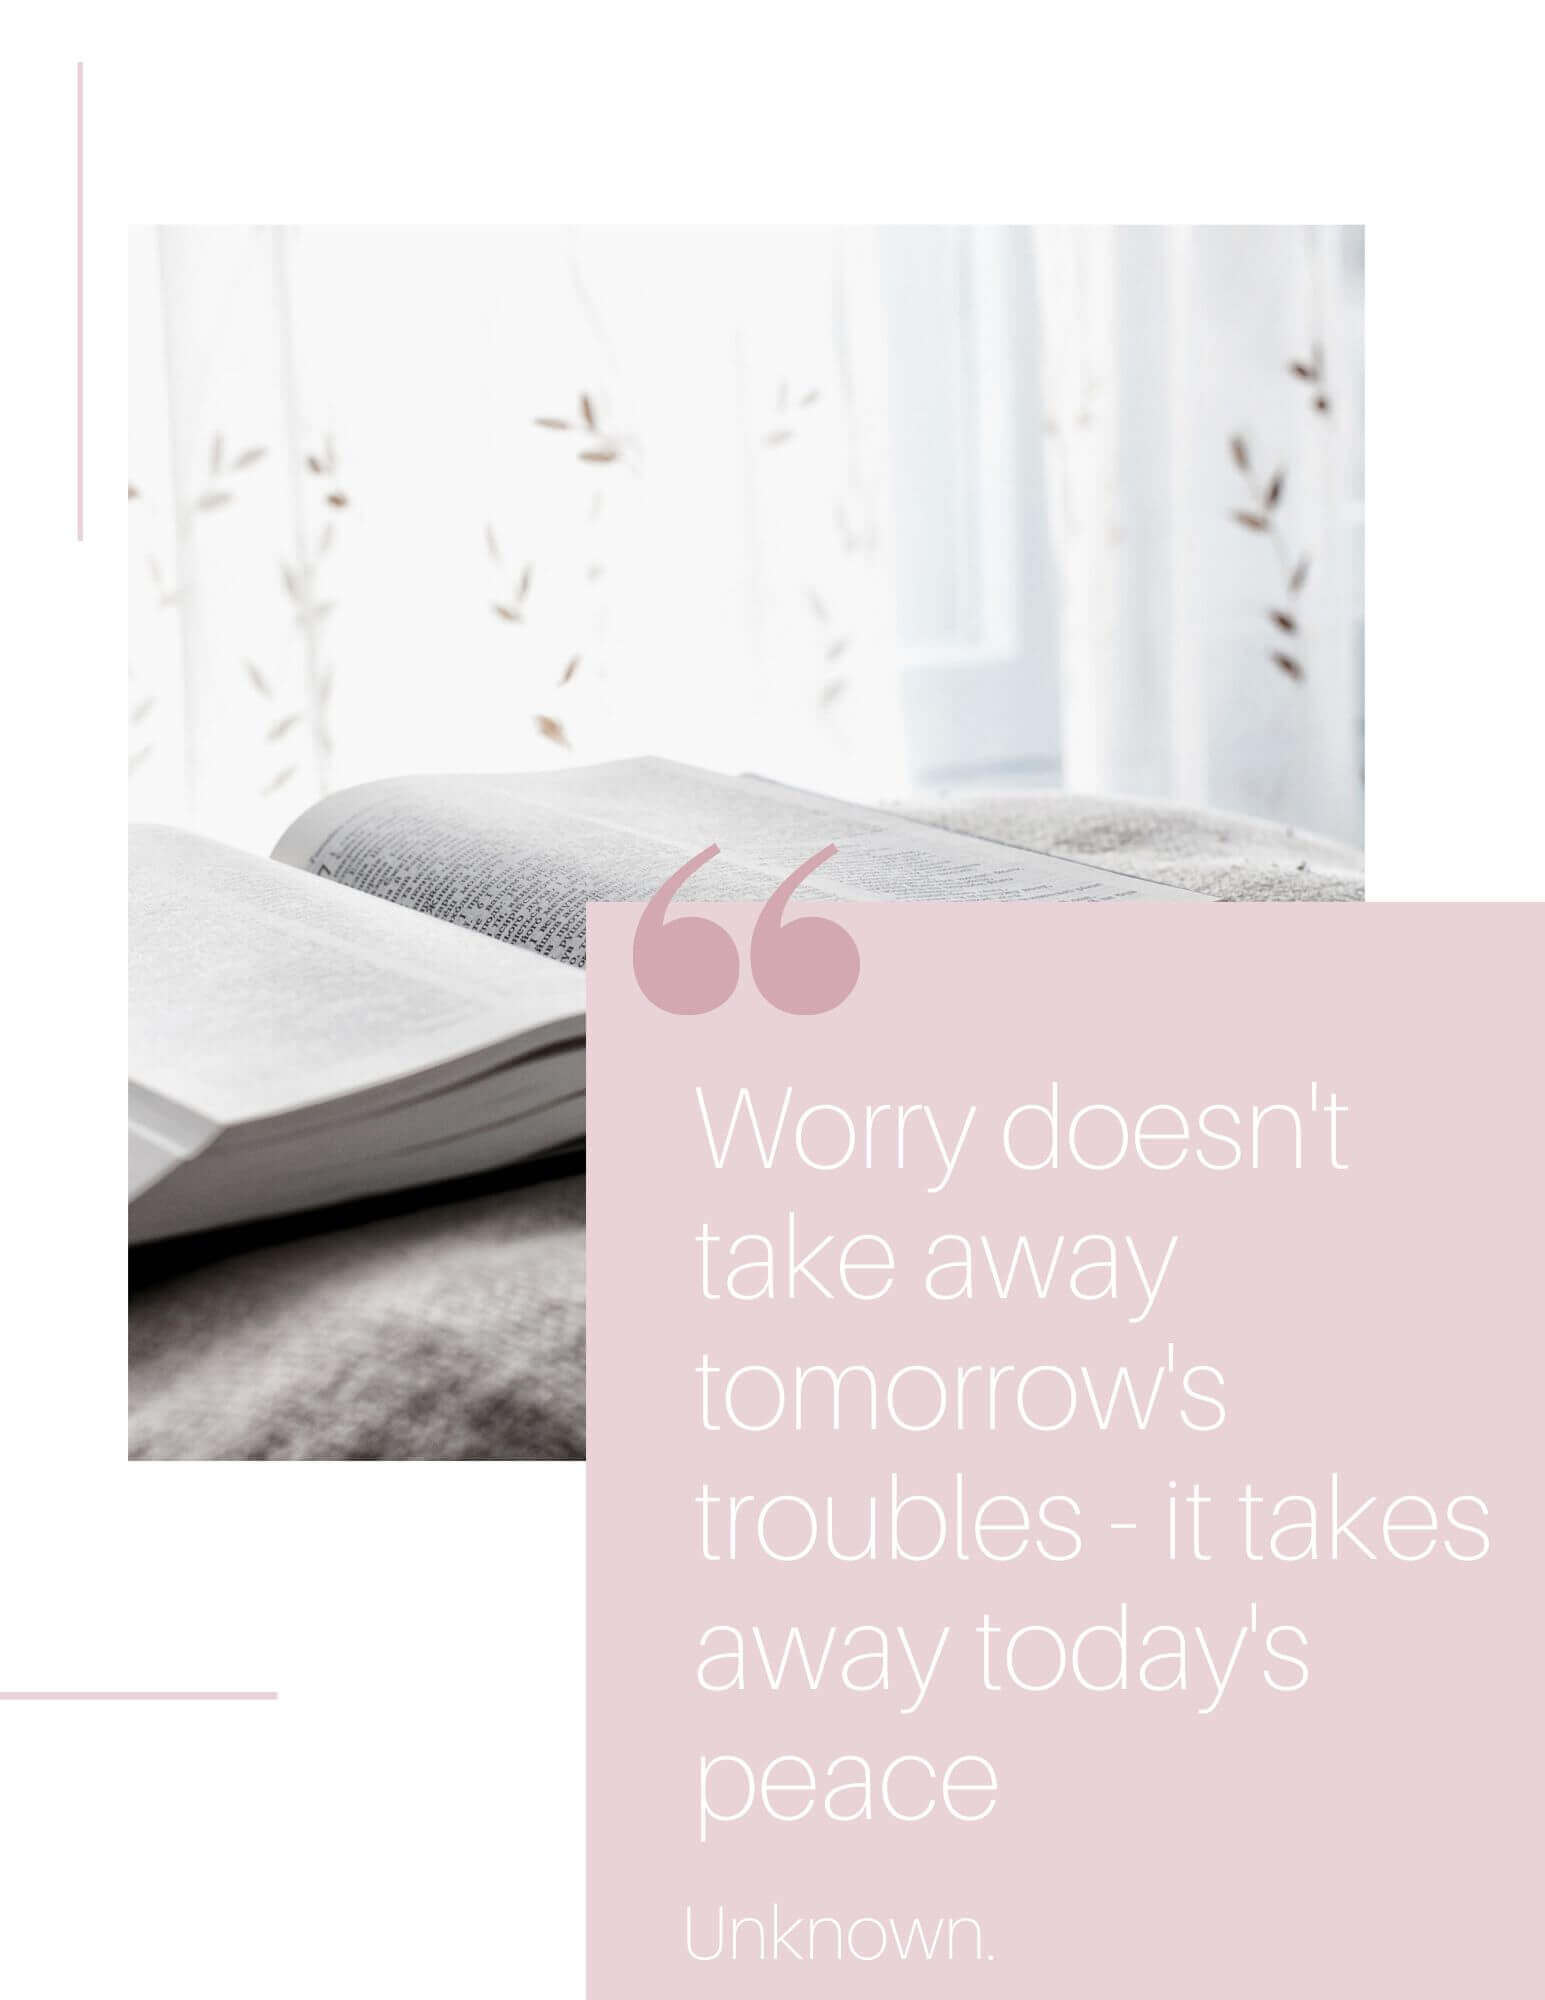 Worry doesn't take away tomorrow's troubles